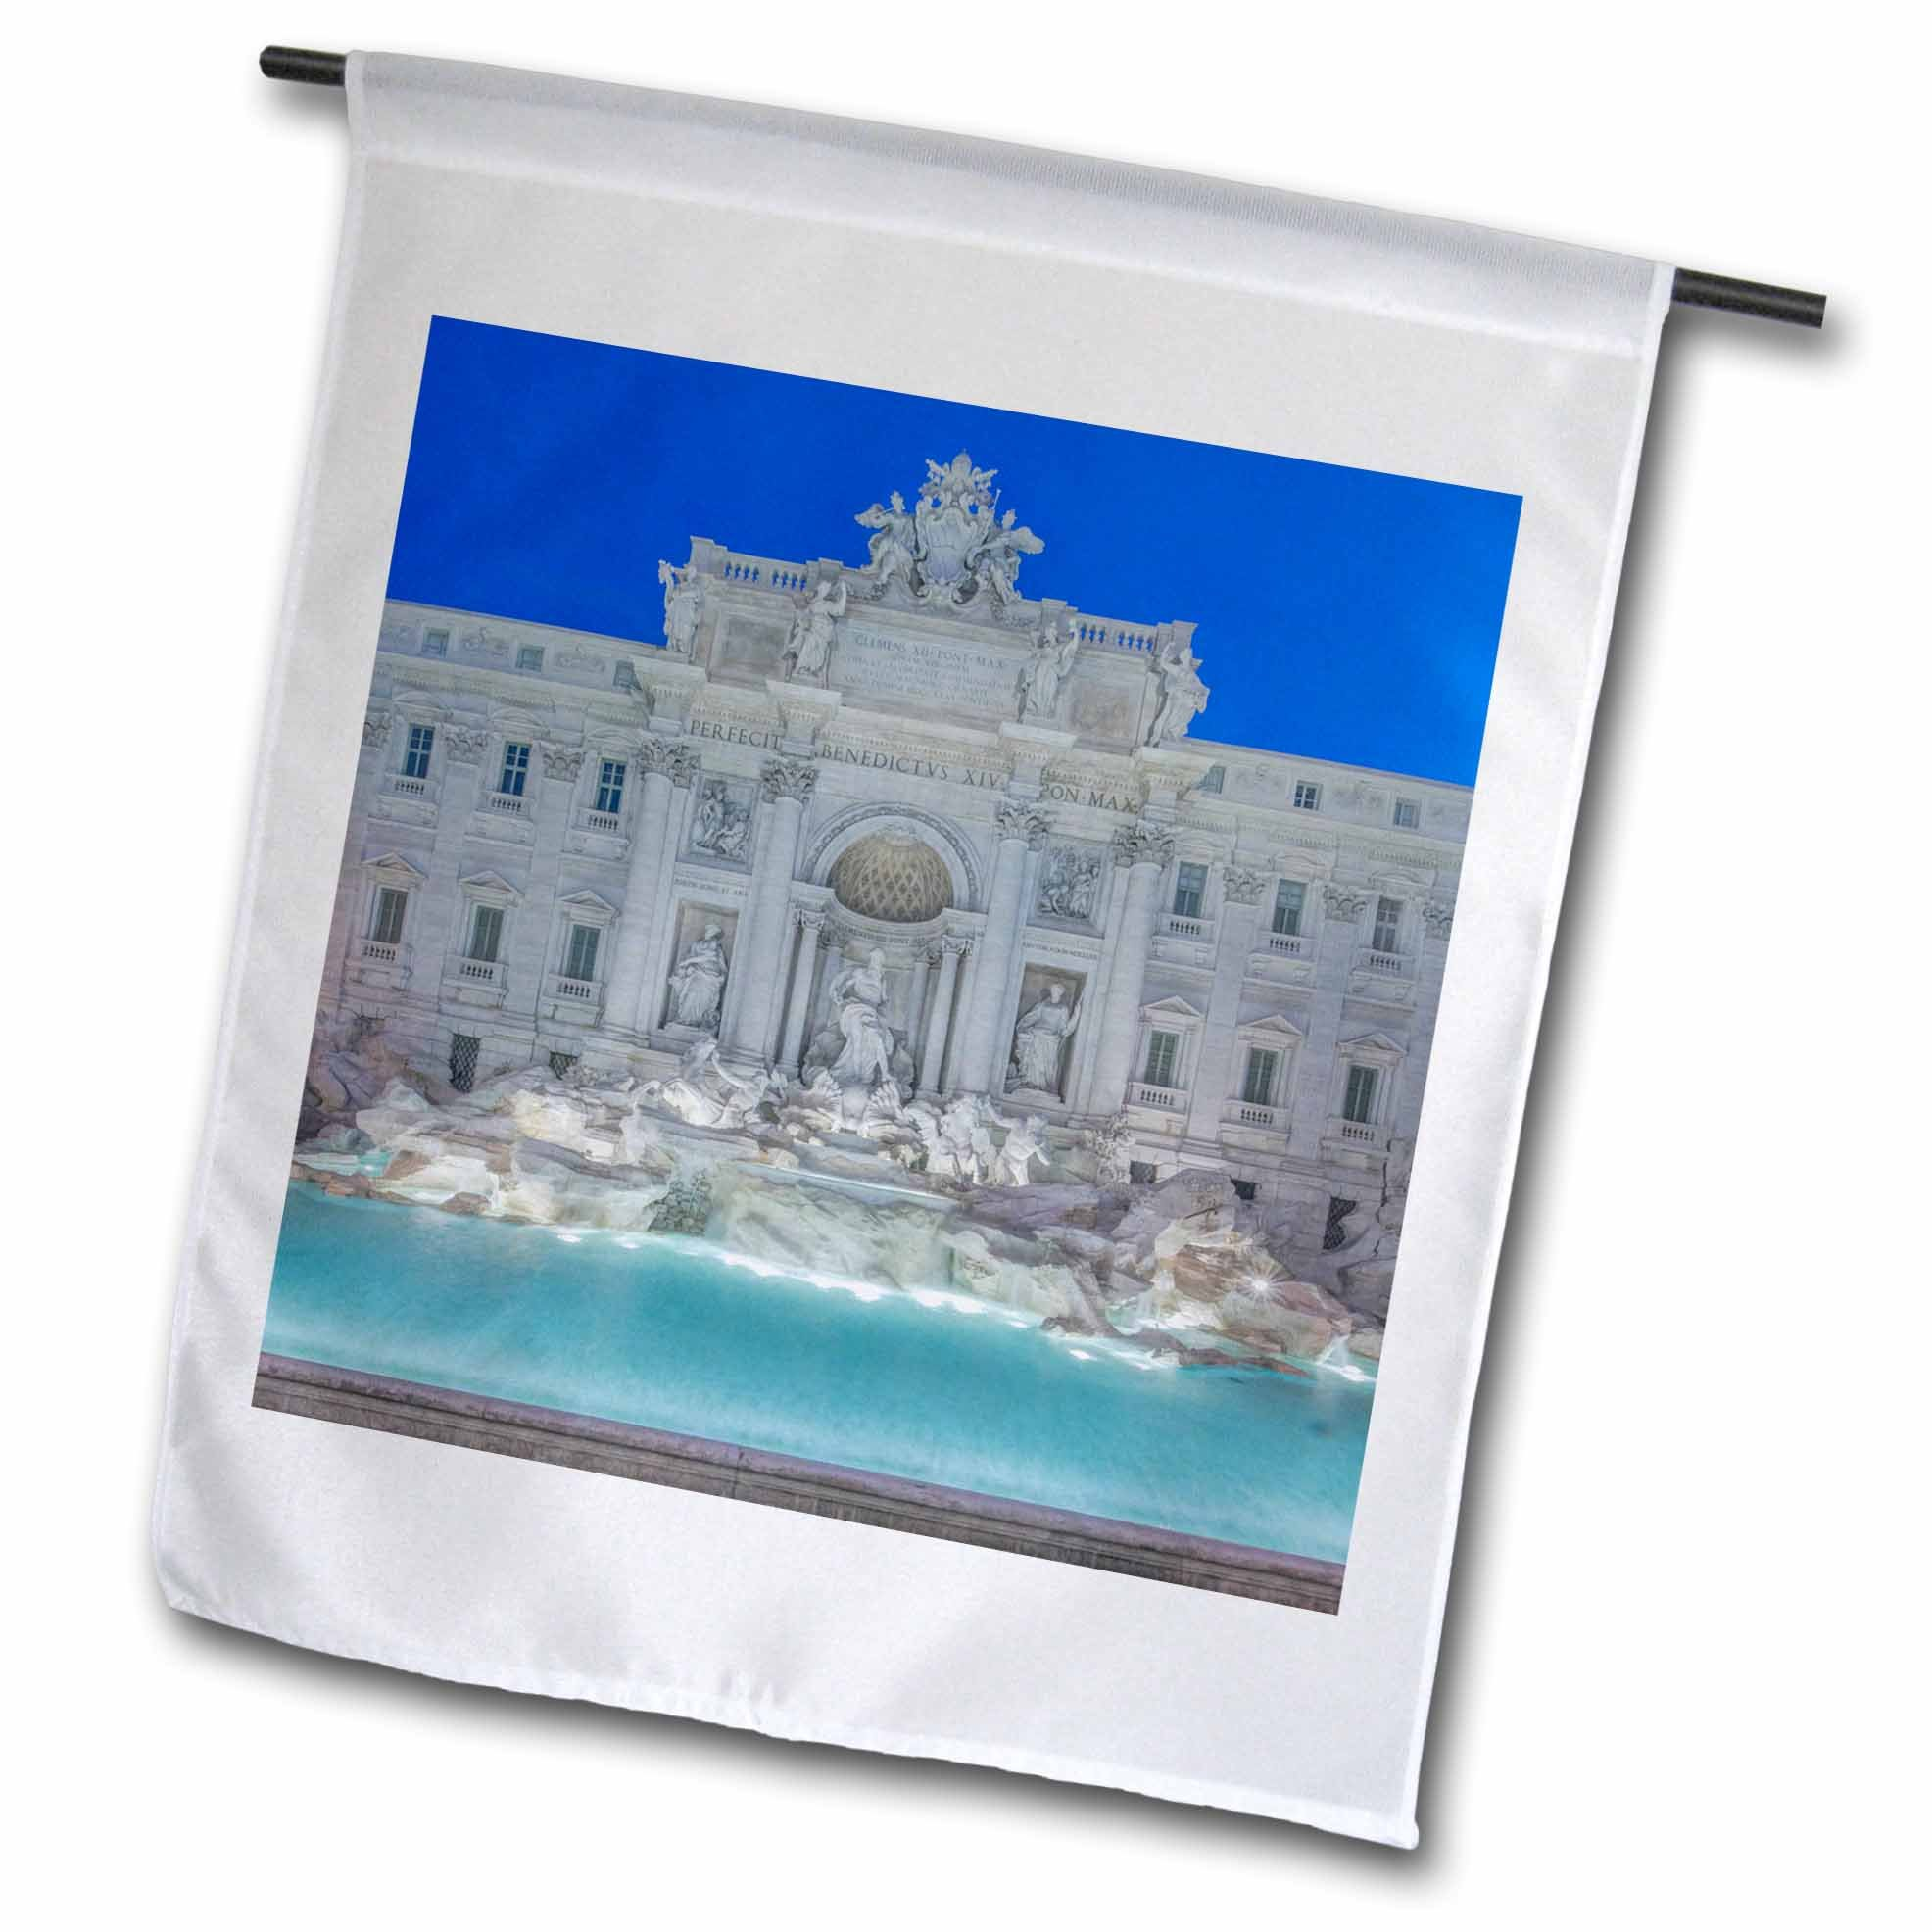 3dRose Danita Delimont - Fountains - Europe, Italy, Rome, Trevi Fountain at dawn - 18 x 27 inch Garden Flag (fl_277641_2)